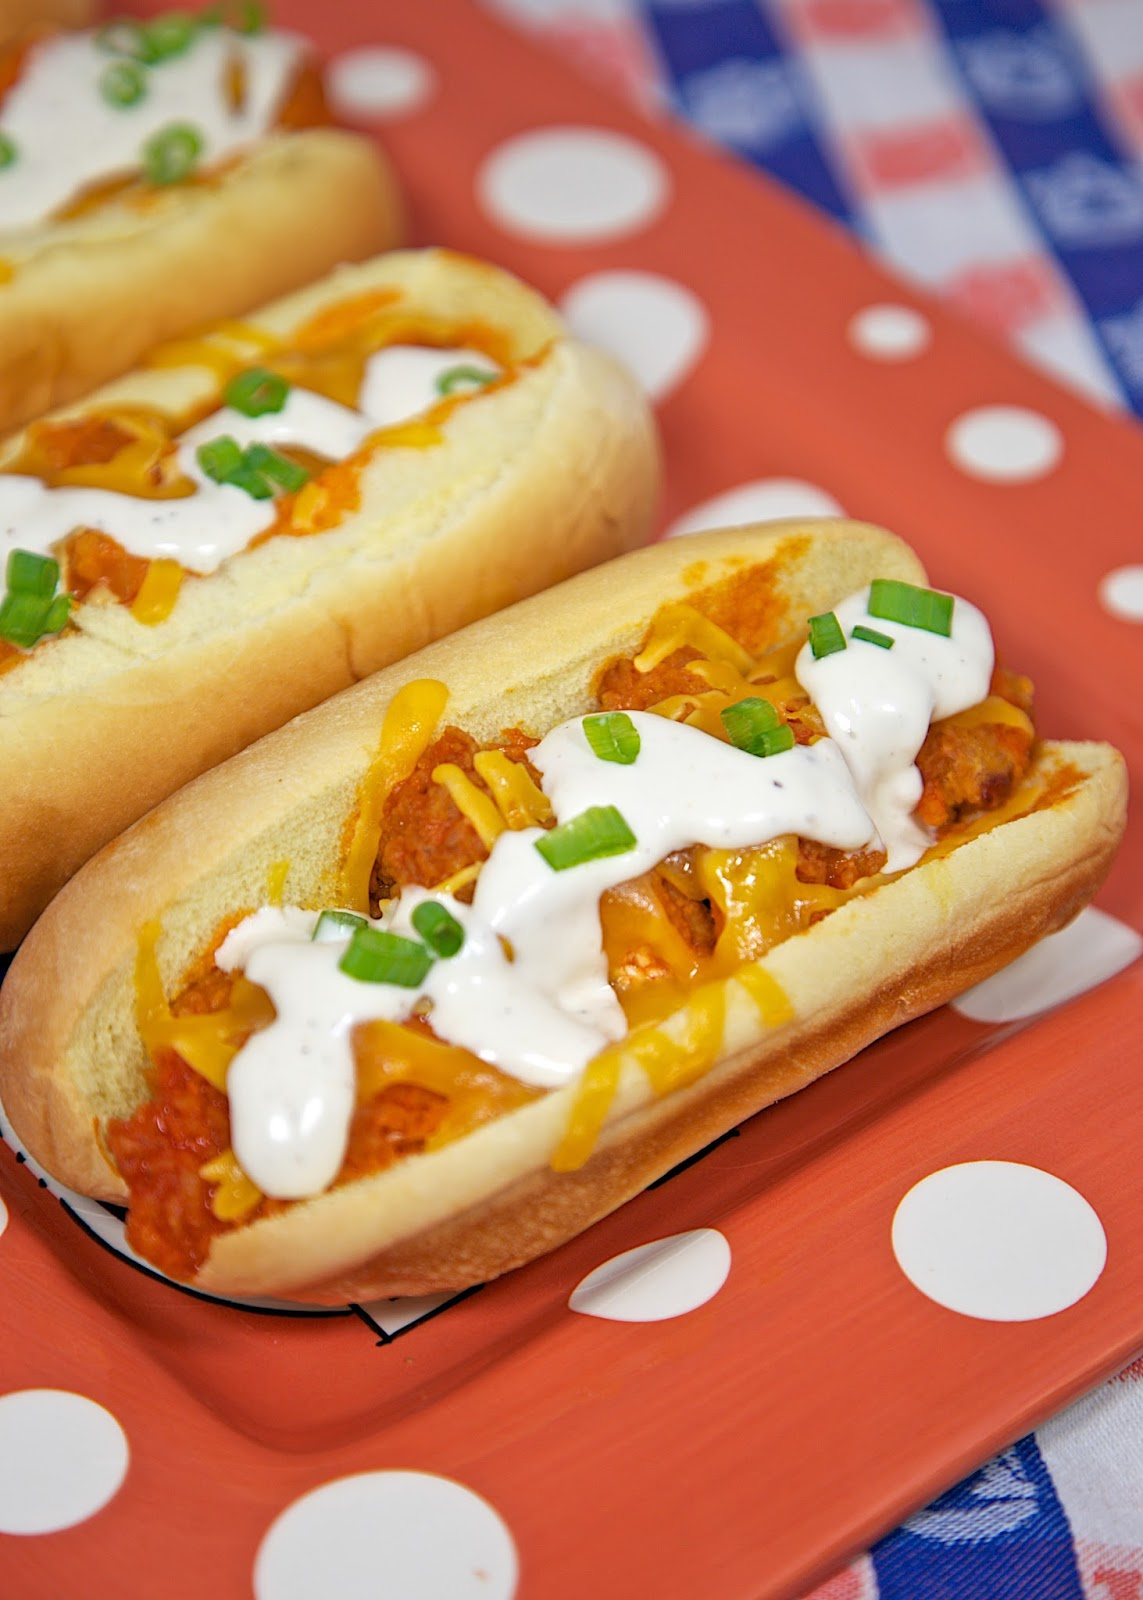 Buffalo Chicken Bird Dogs Recipe - chicken tenders, buffalo sauce, cheese and Ranch served in hot dog buns. Our favorite way to eat chicken tenders!